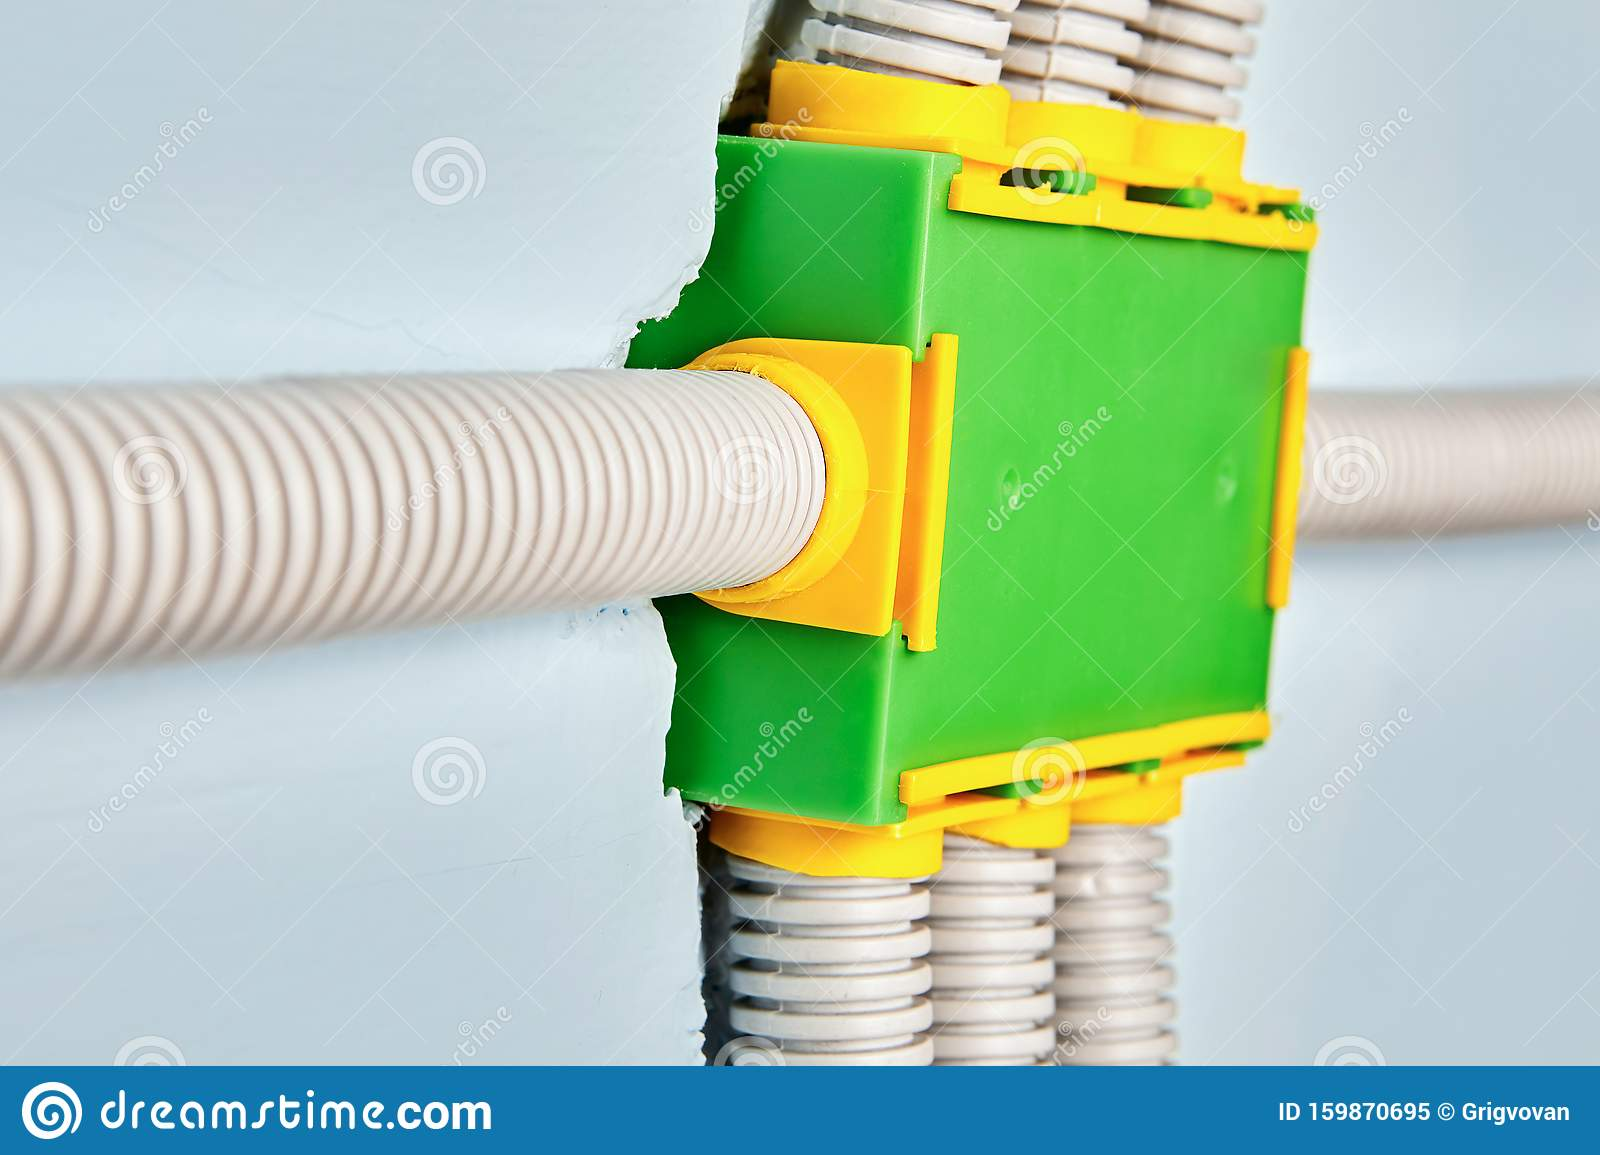 Wiring Box For Electrical House Stock Image Image Of Green Circuit 159870695